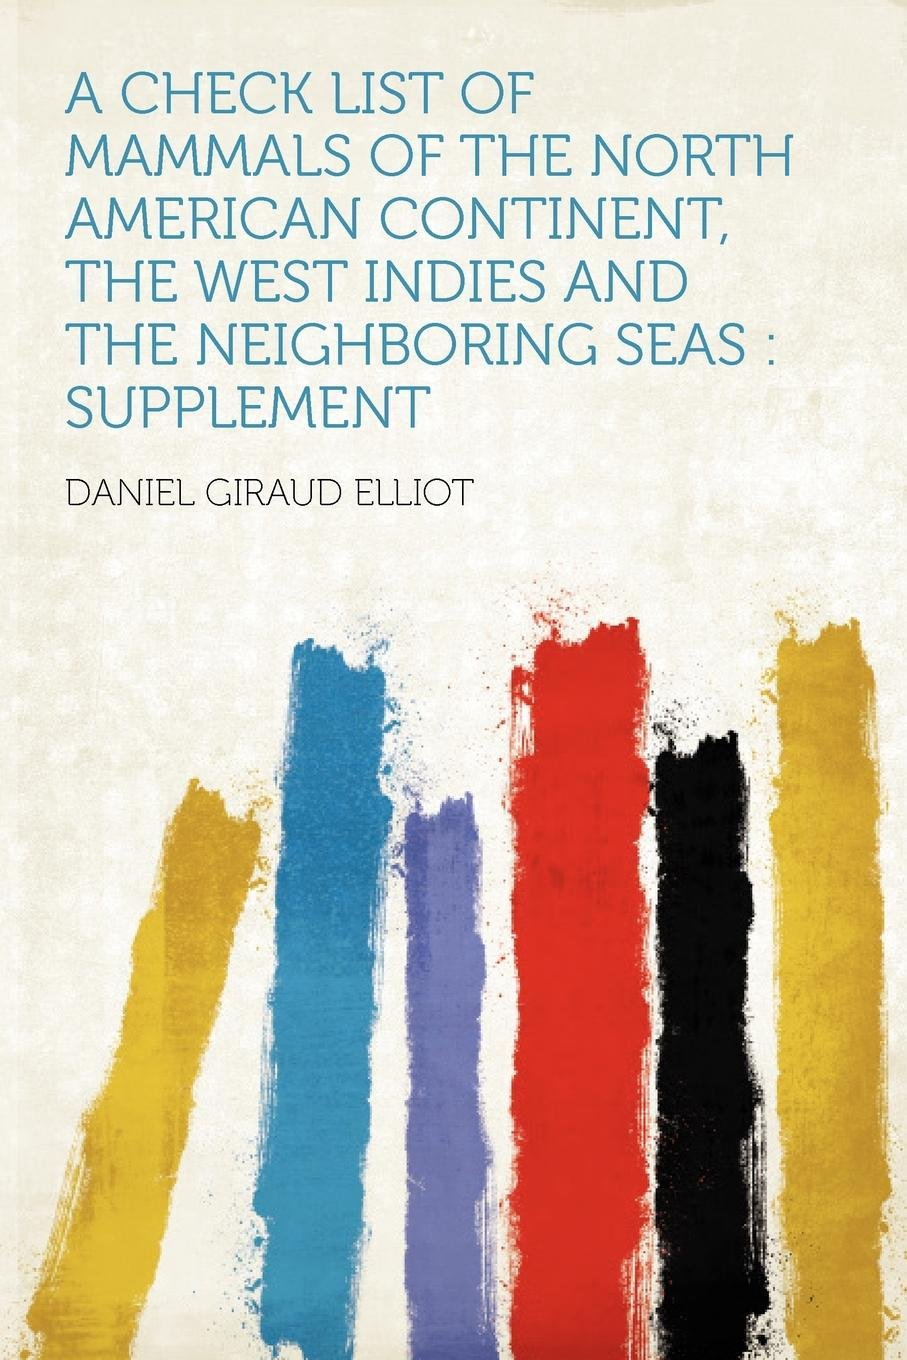 A Check List of Mammals of the North American Continent, the West Indies and the Neighboring Seas: Supplement pdf epub